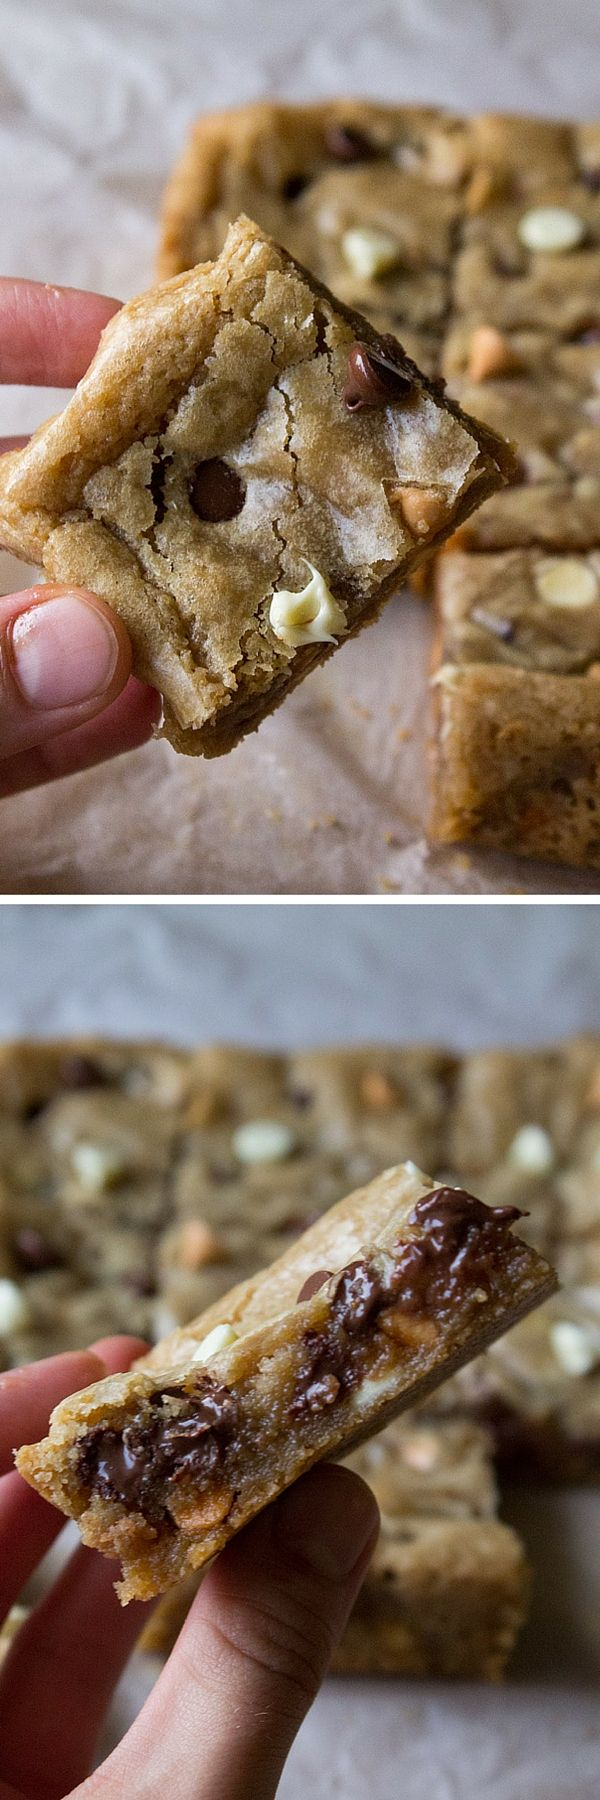 jewelry online cheap shopping Triple Chip Cookie Bars  Chewy  fudgy  amp  filled with chocolate chips   you  39 ll love how easy this recipe is